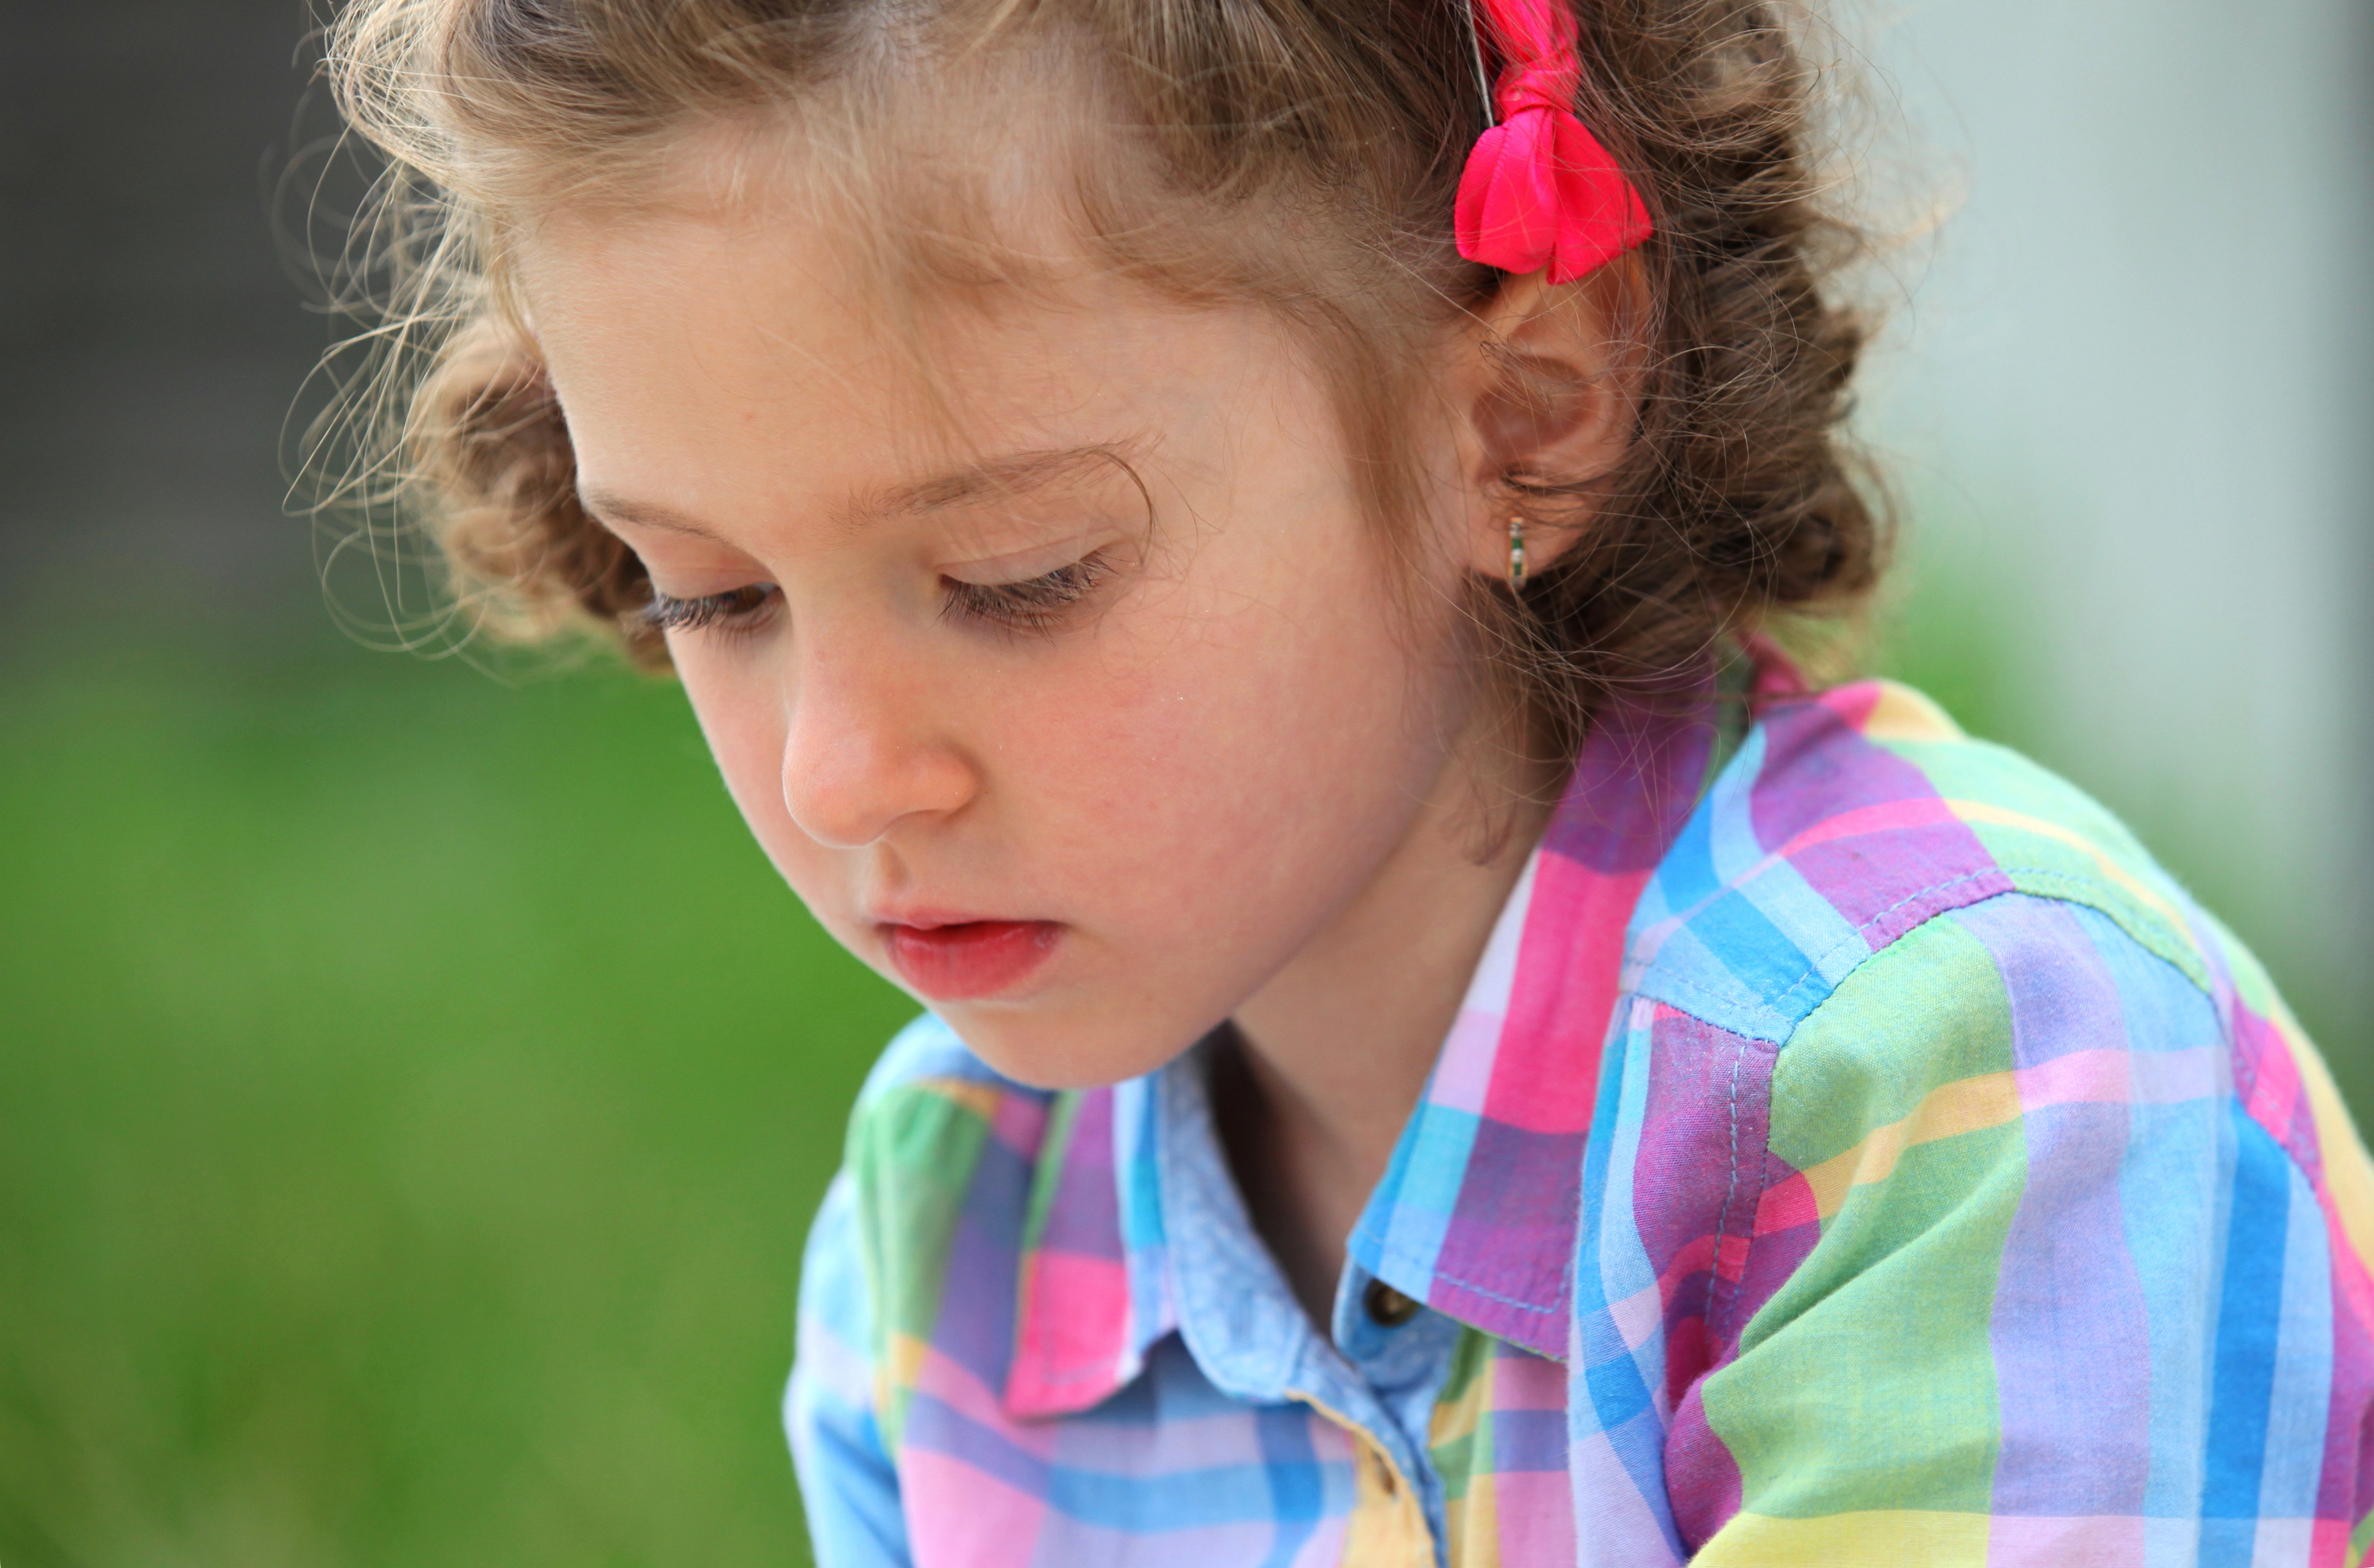 an amazing sweet child girl in a Christian camp, photographed in July 2013, portrait 7/14